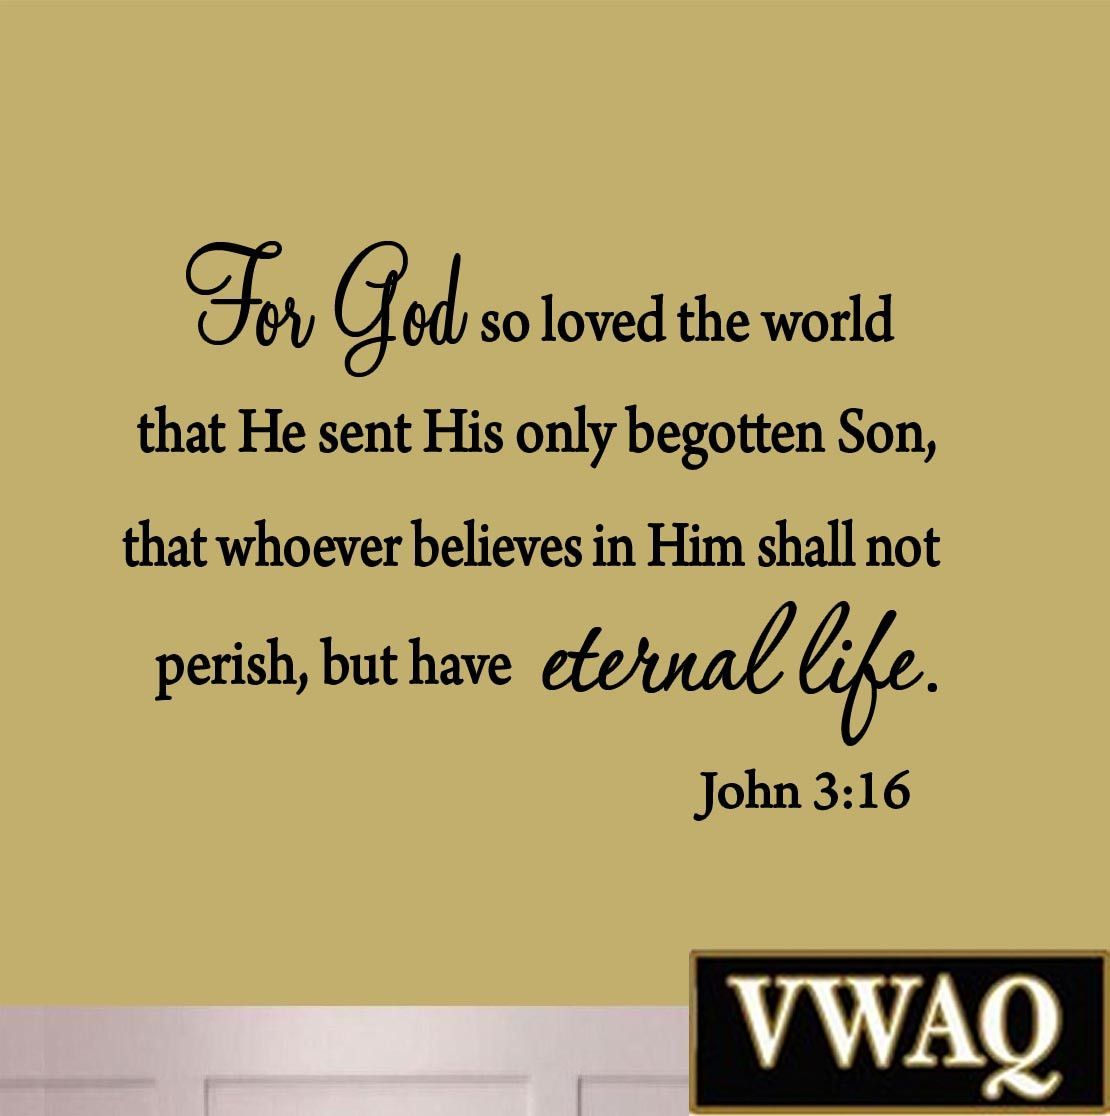 VWAQ For God So Loved The World John 3:16 Wall Decal | Verses, Bible ...